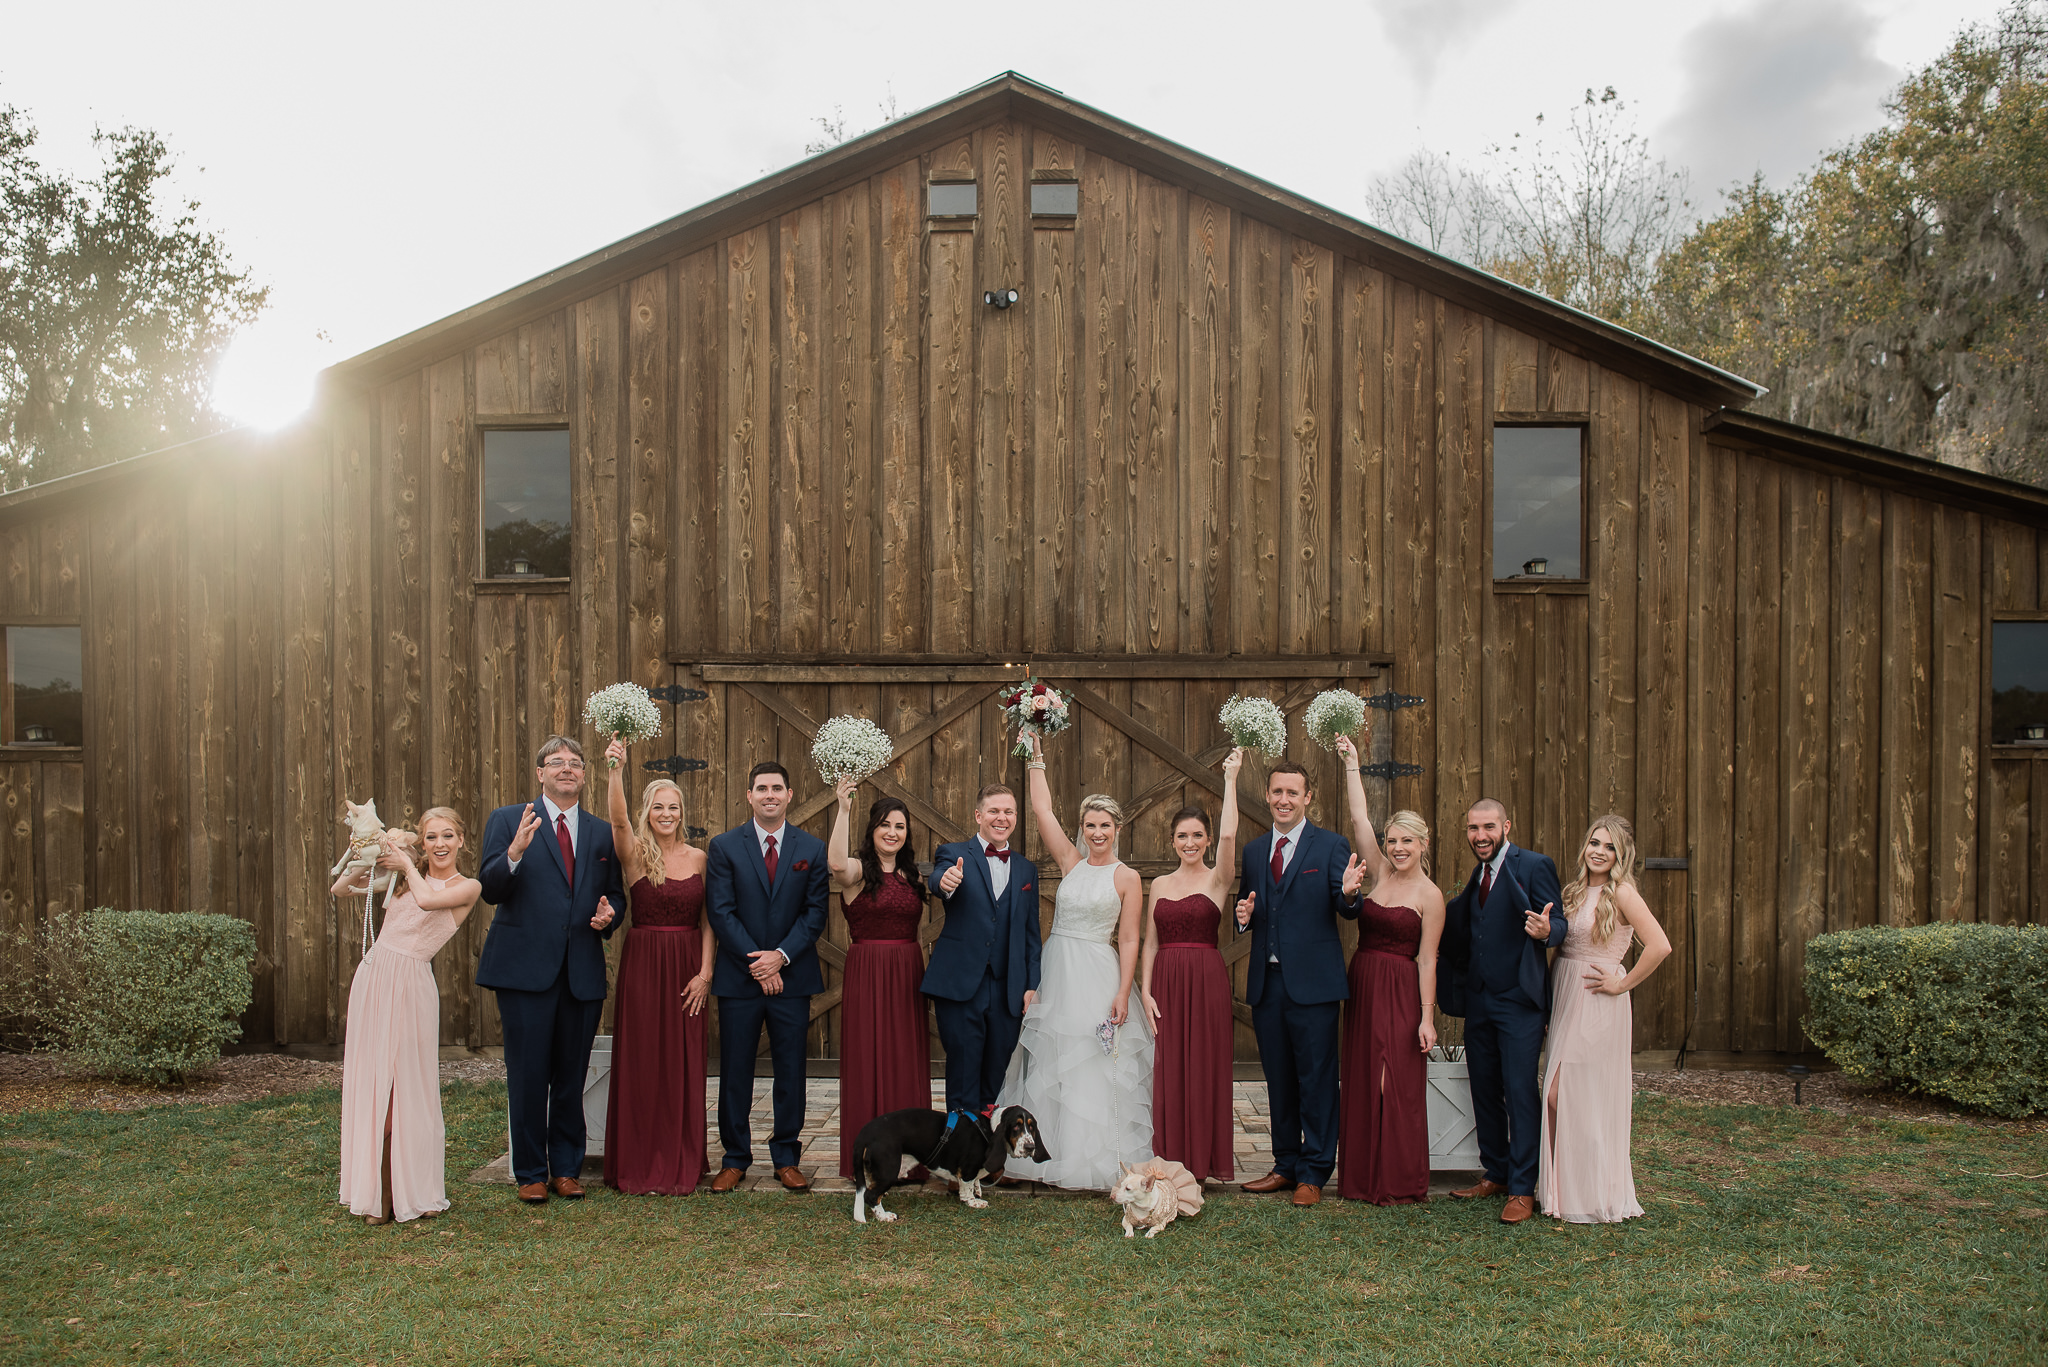 TAMPA_WEDDING_PHOTOGRAPHER_DRMZ_SPARROW_BARN_28.jpg